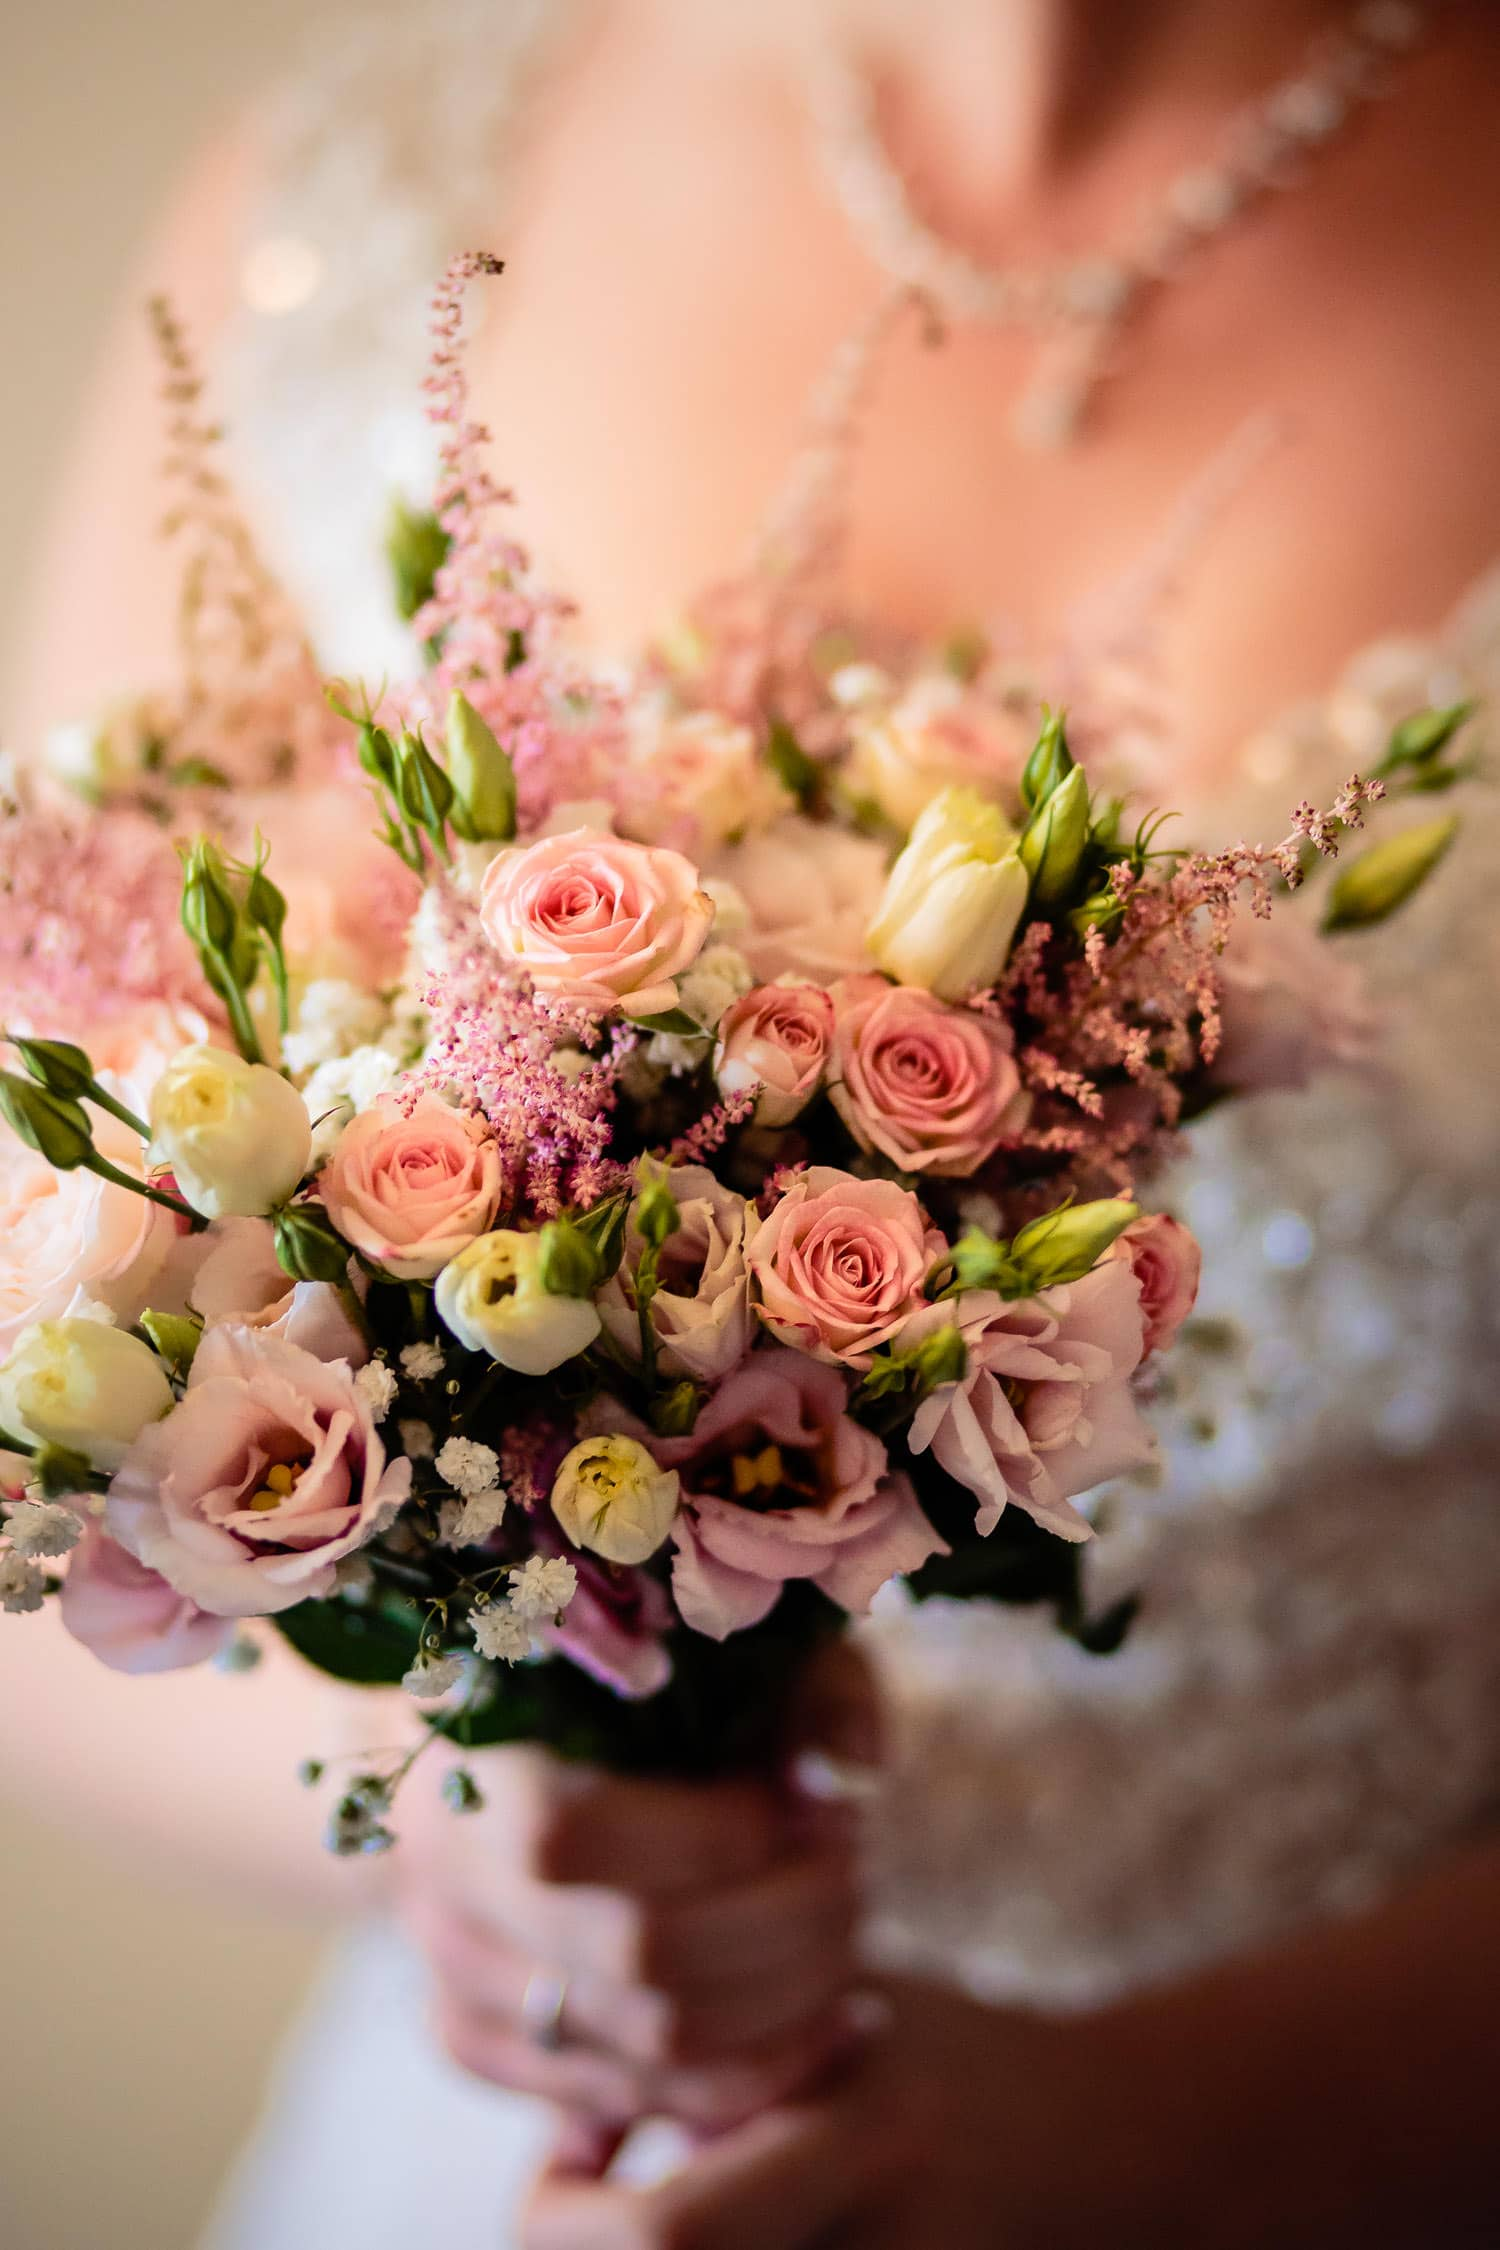 Warwick House Wedding Photography captures brides pretty pastel pink boquet